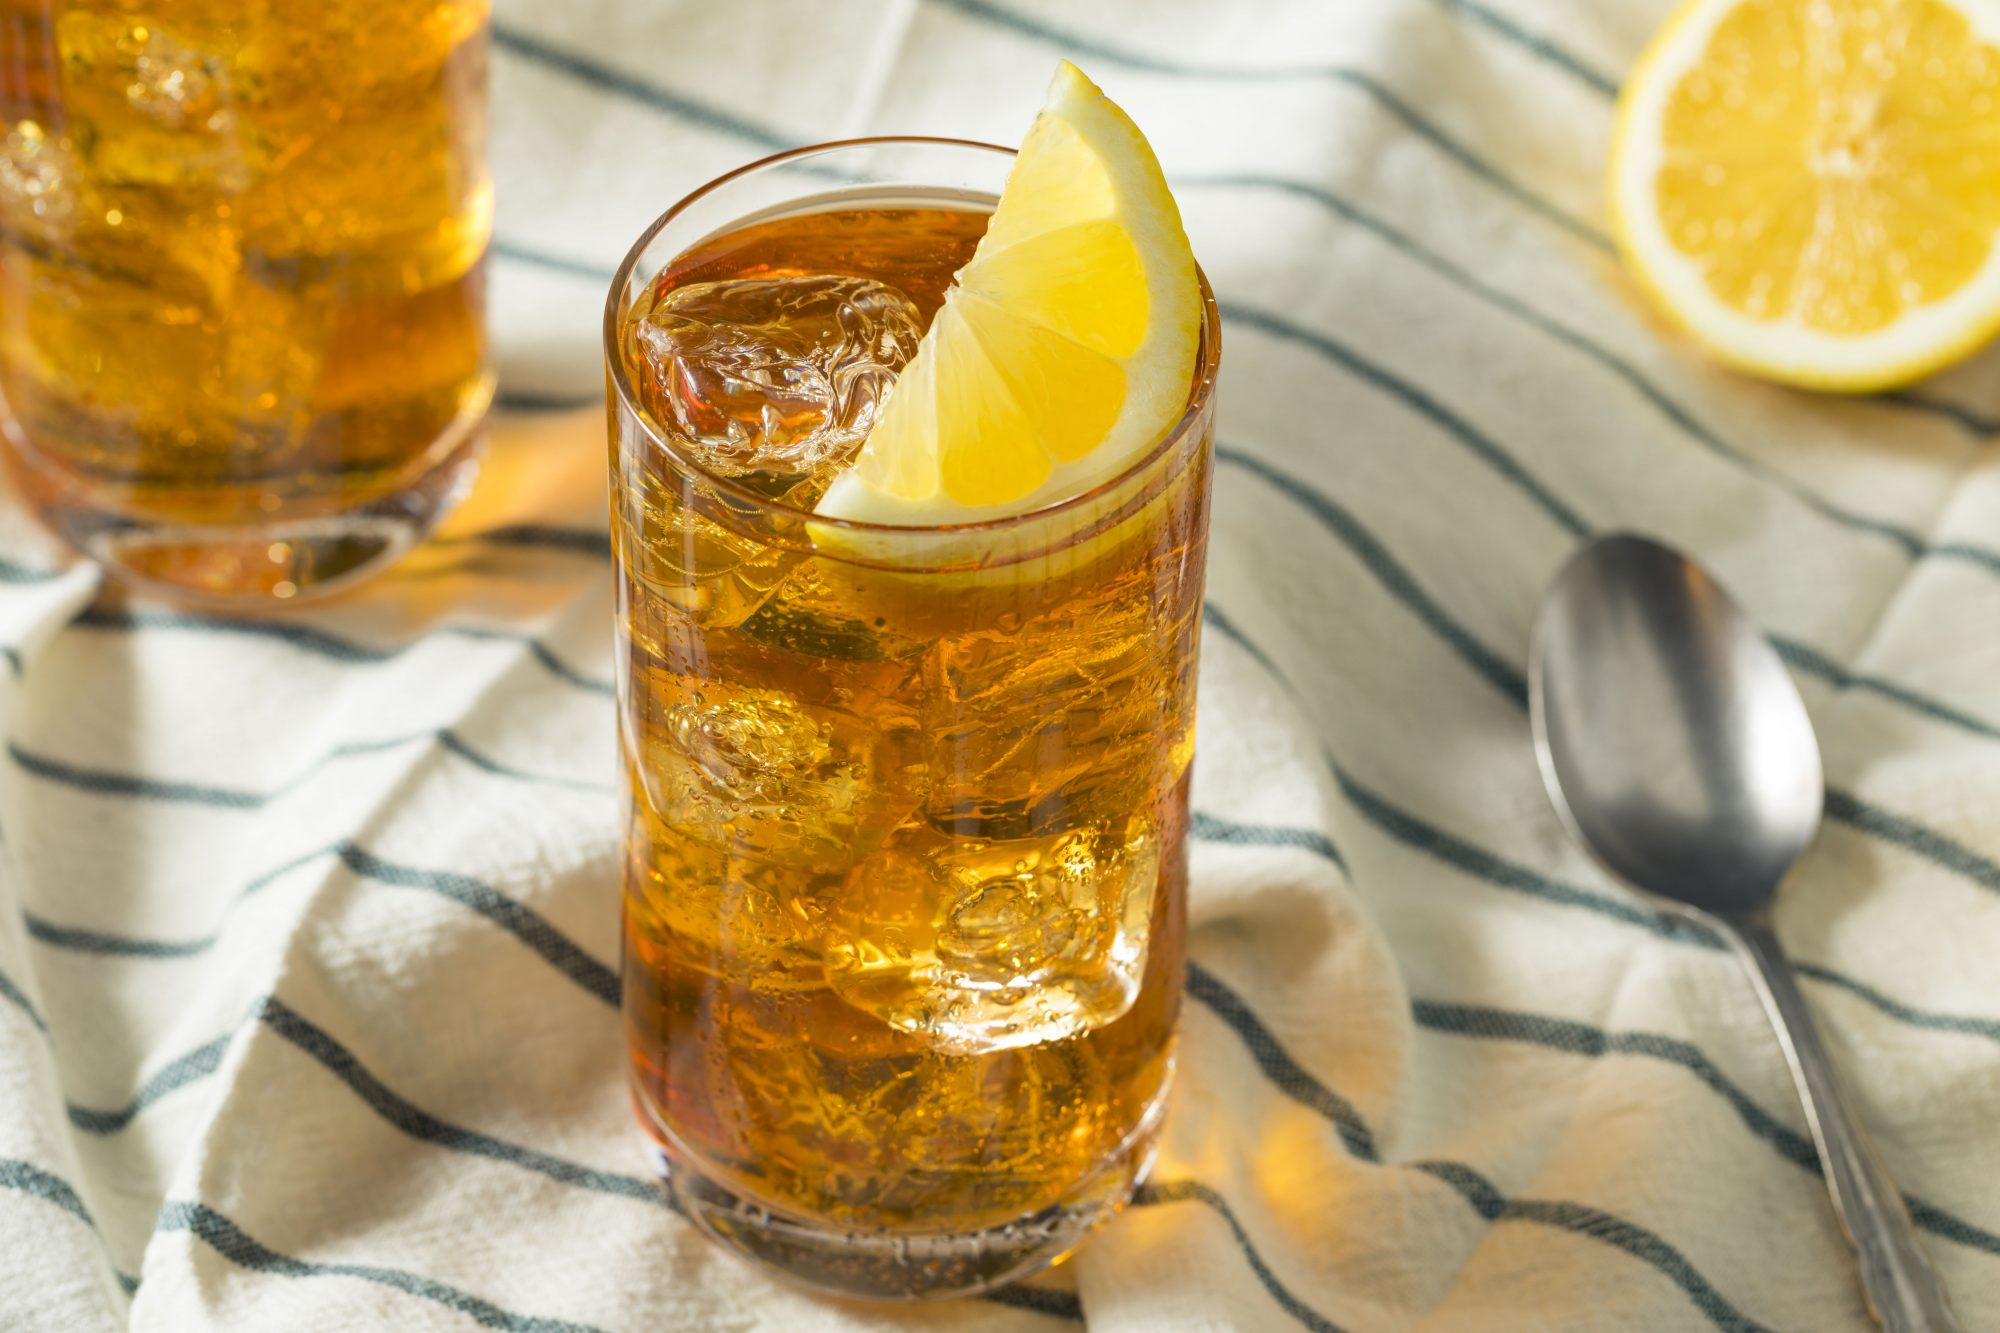 Why You Should Make Sweet Tea in Your Instant Pot